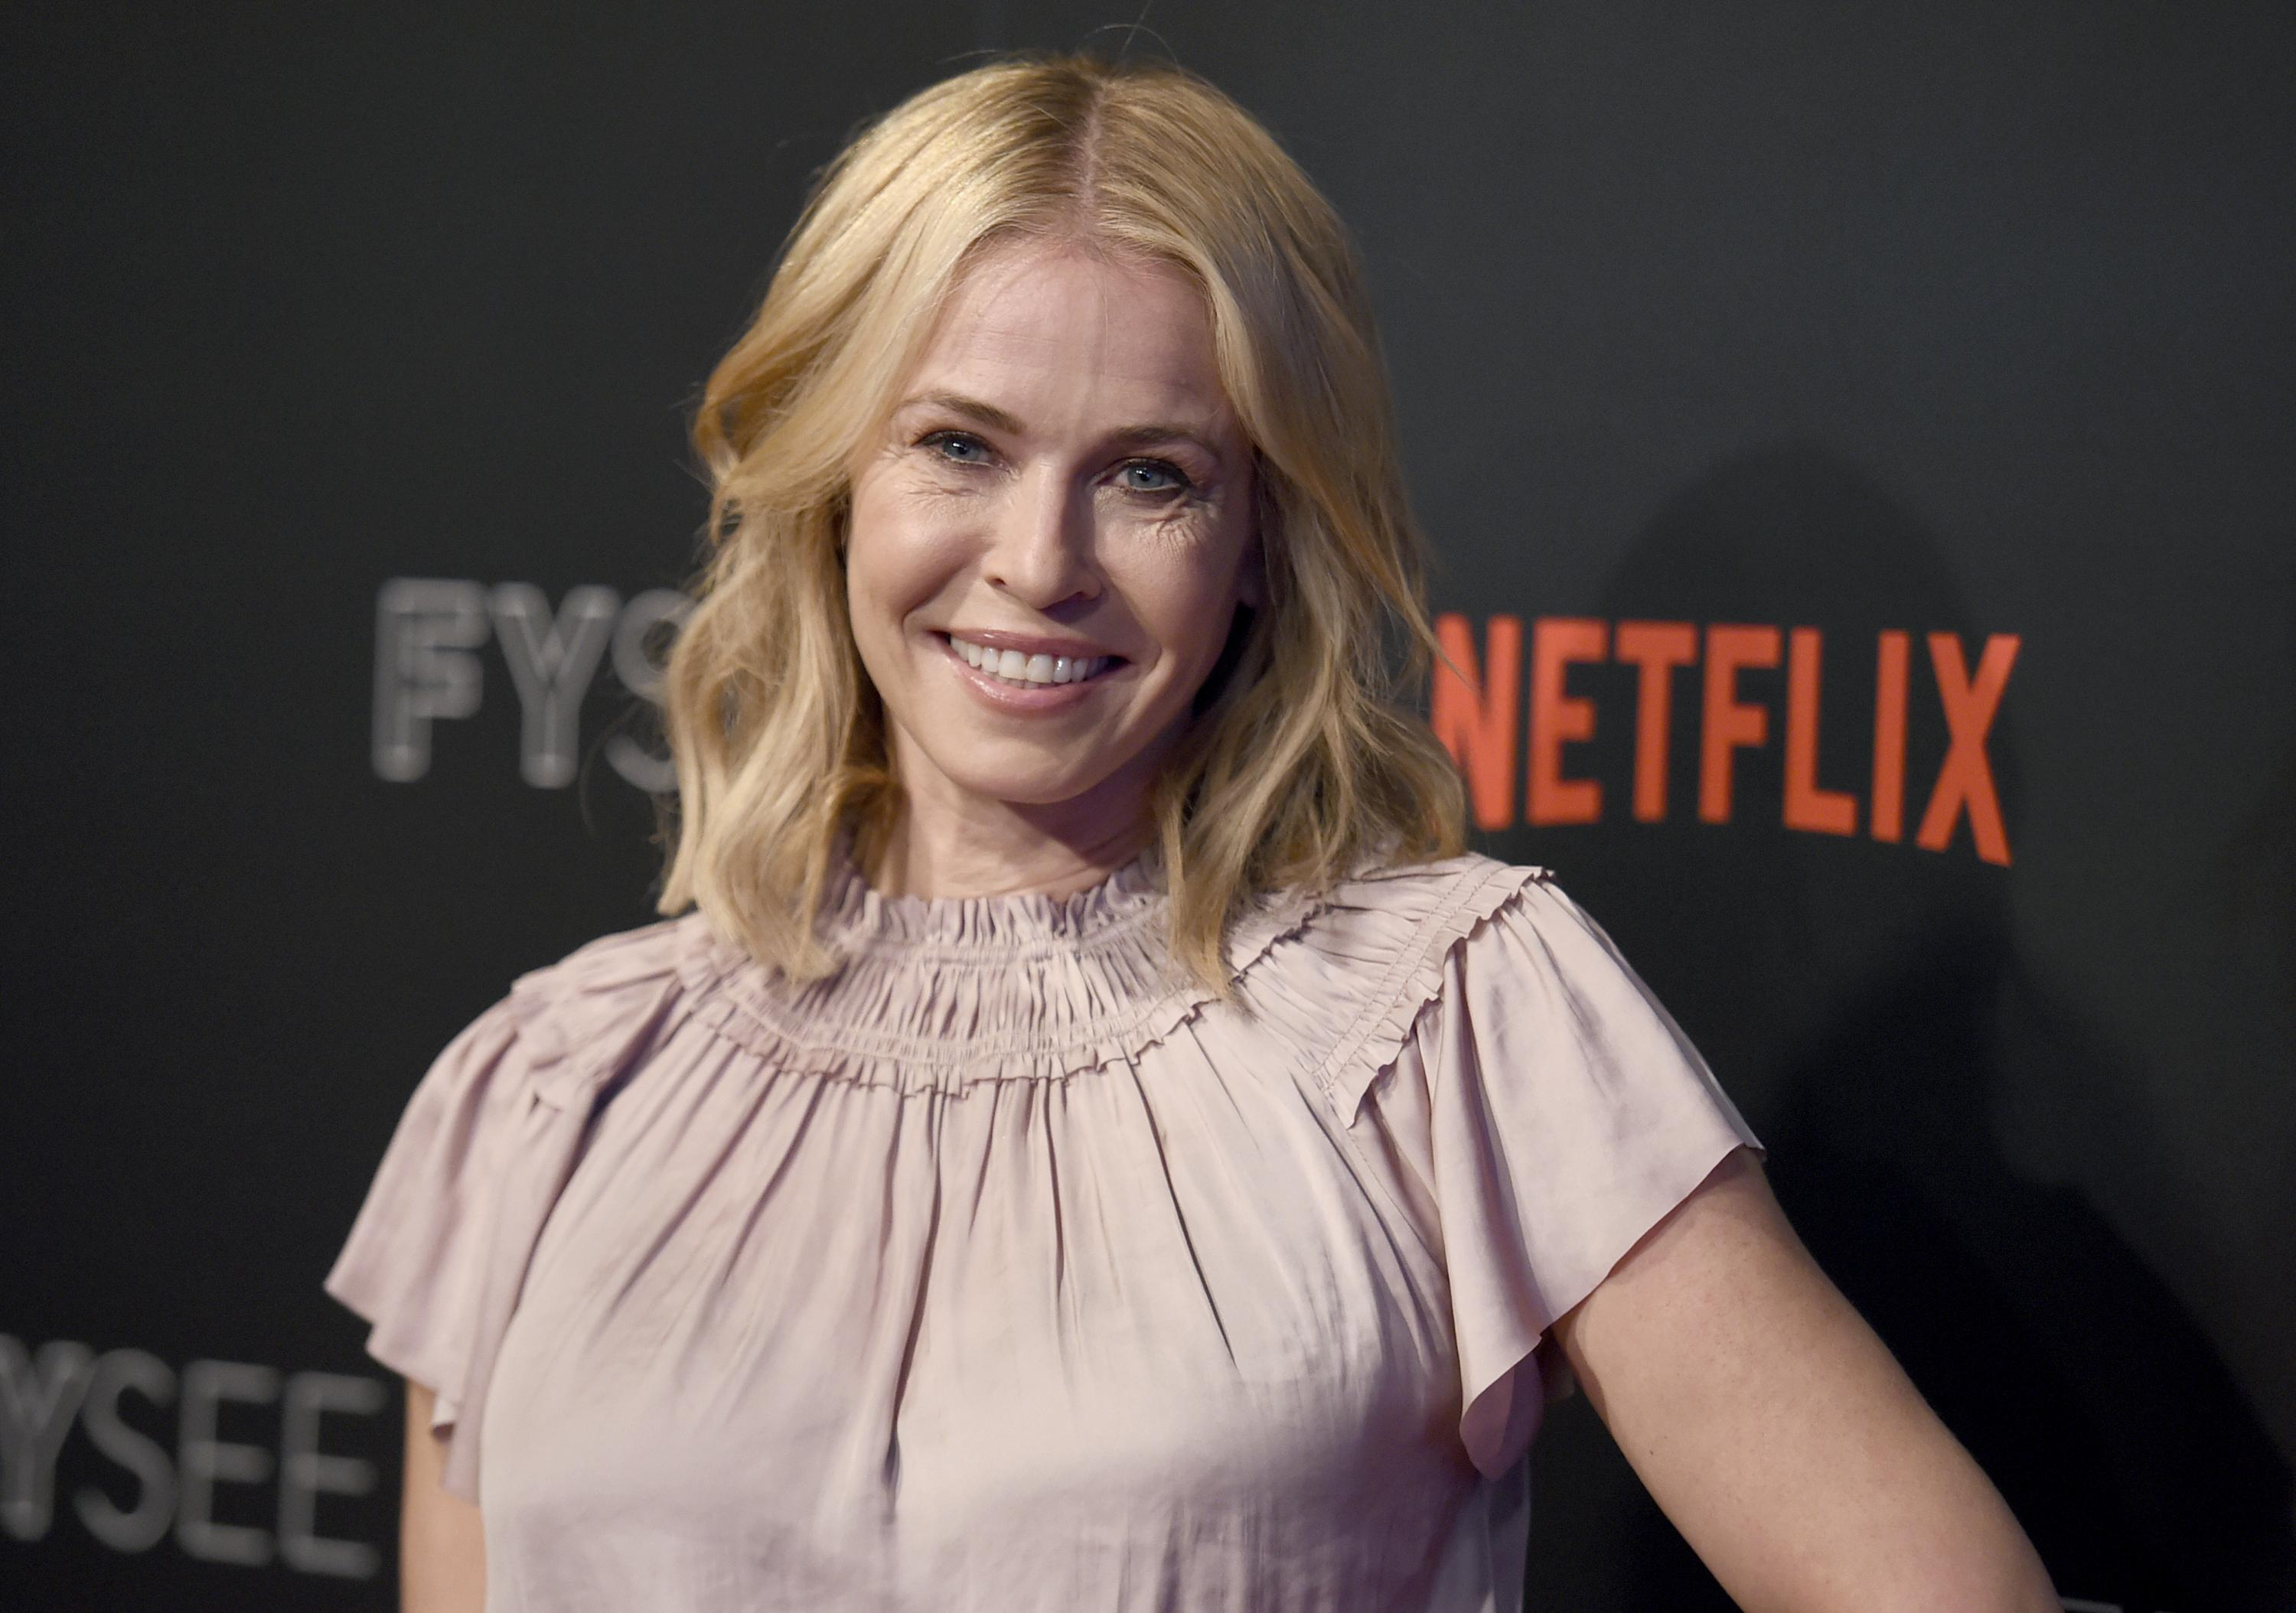 Chelsea Handler says 'everyone should watch' white privilege doc: 'Especially you, Mr. President'